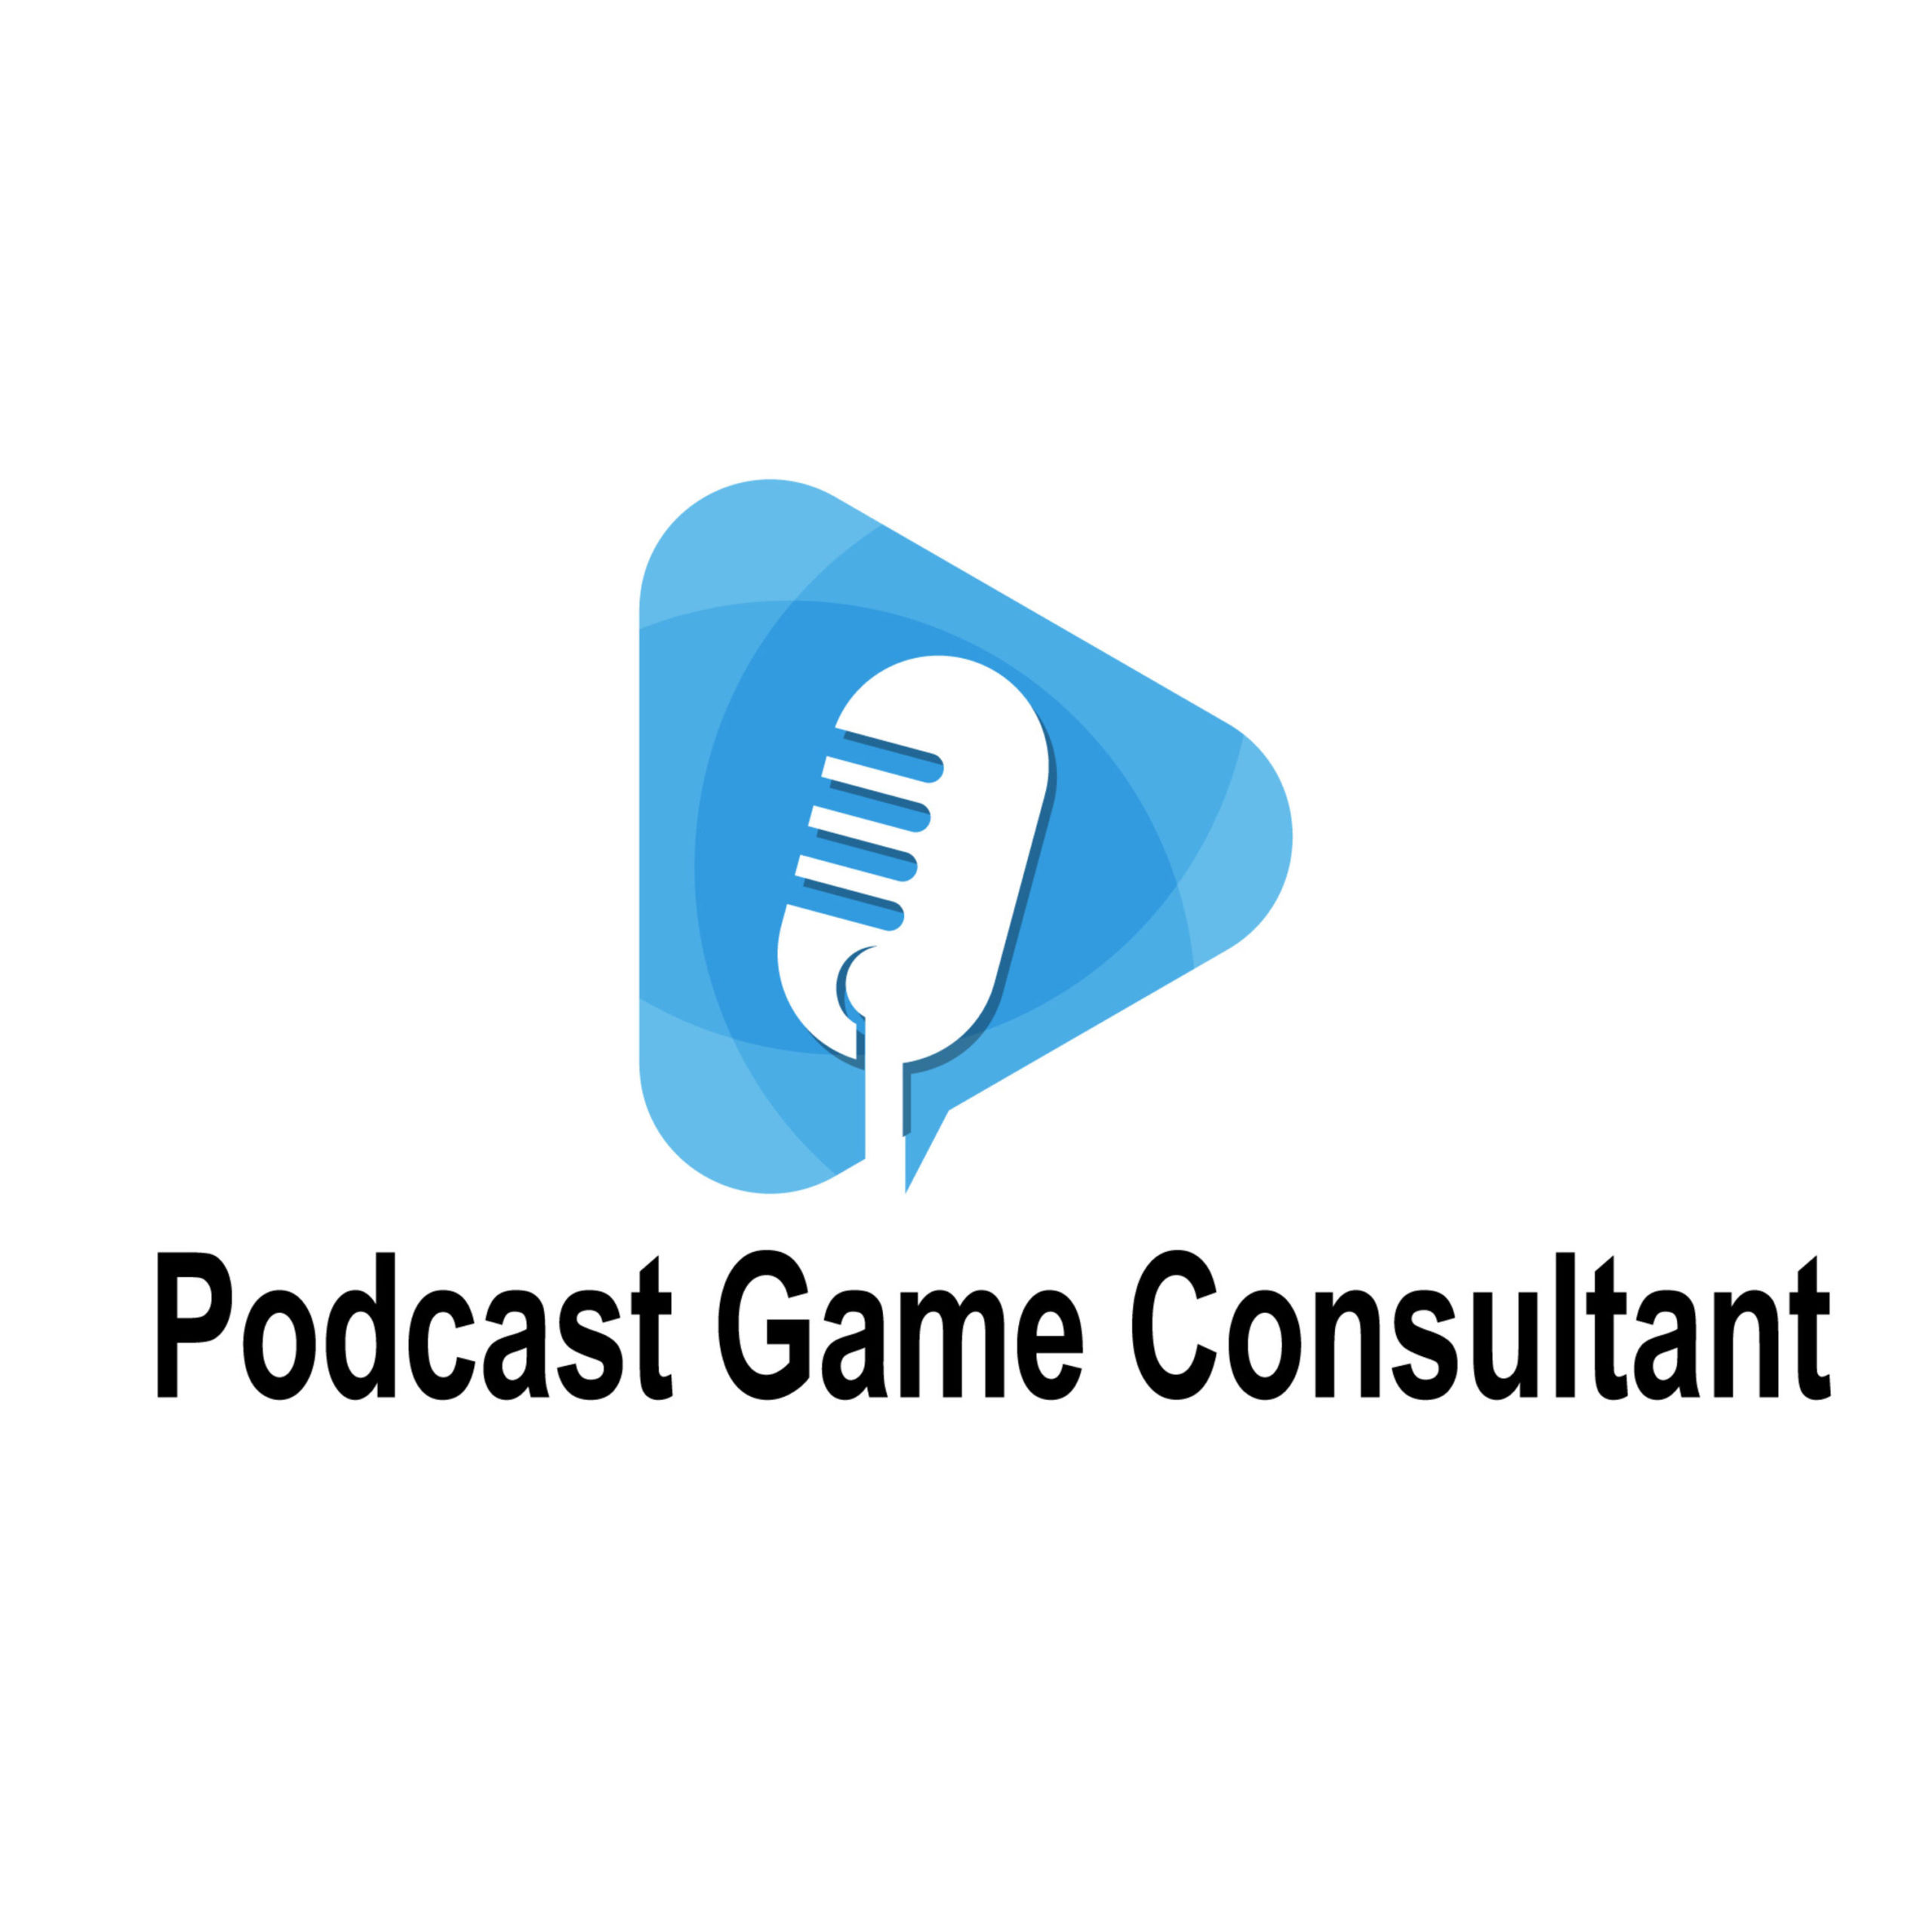 Episode 27; Our Games Podcast In The Top 40 Gaming